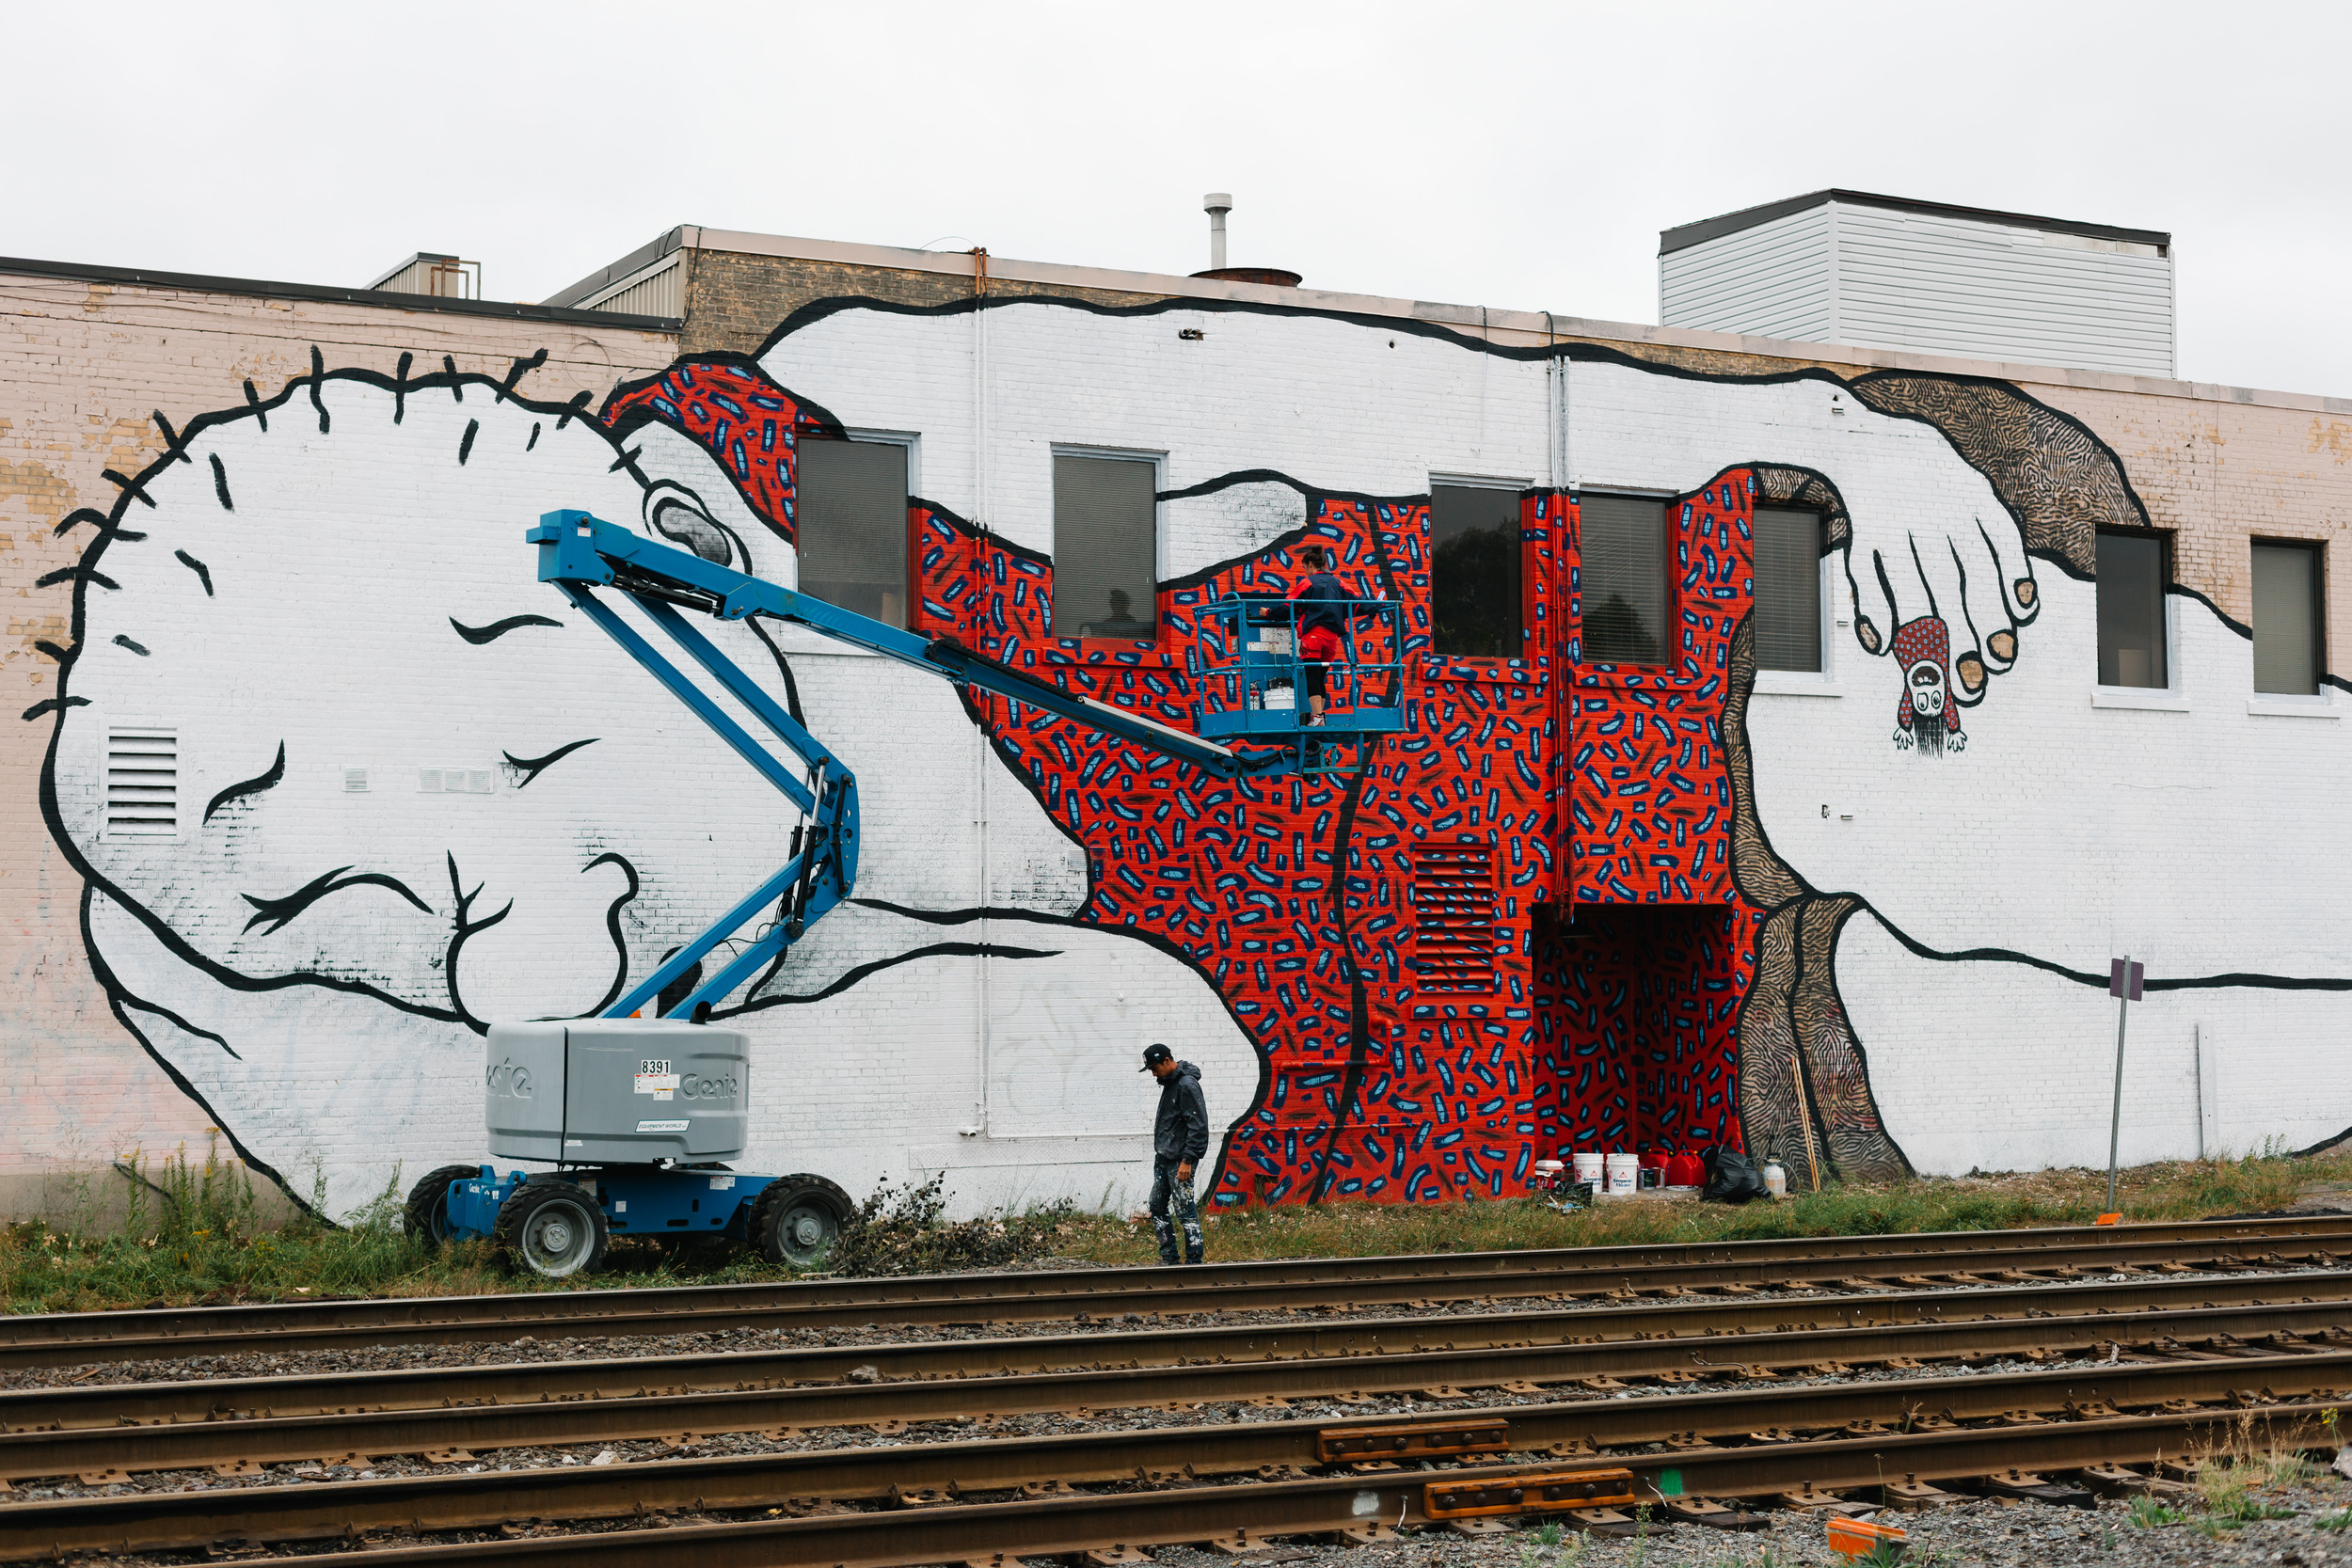 France based Muralists, Ella & Pitr